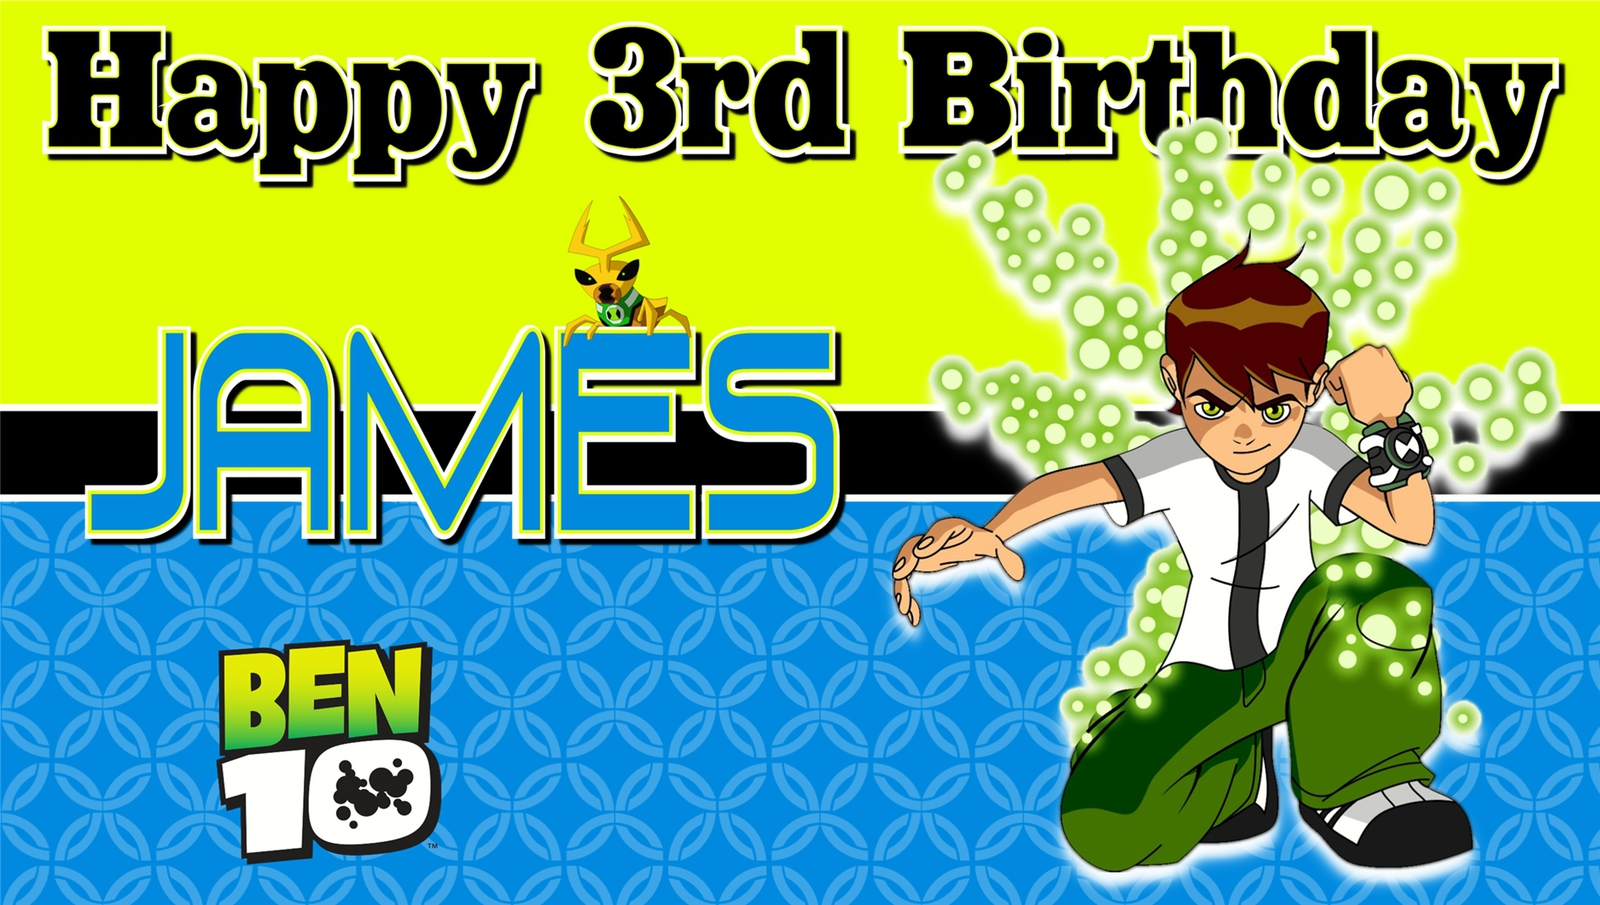 Ben 10 Custom Personalized Birthday Party Banner